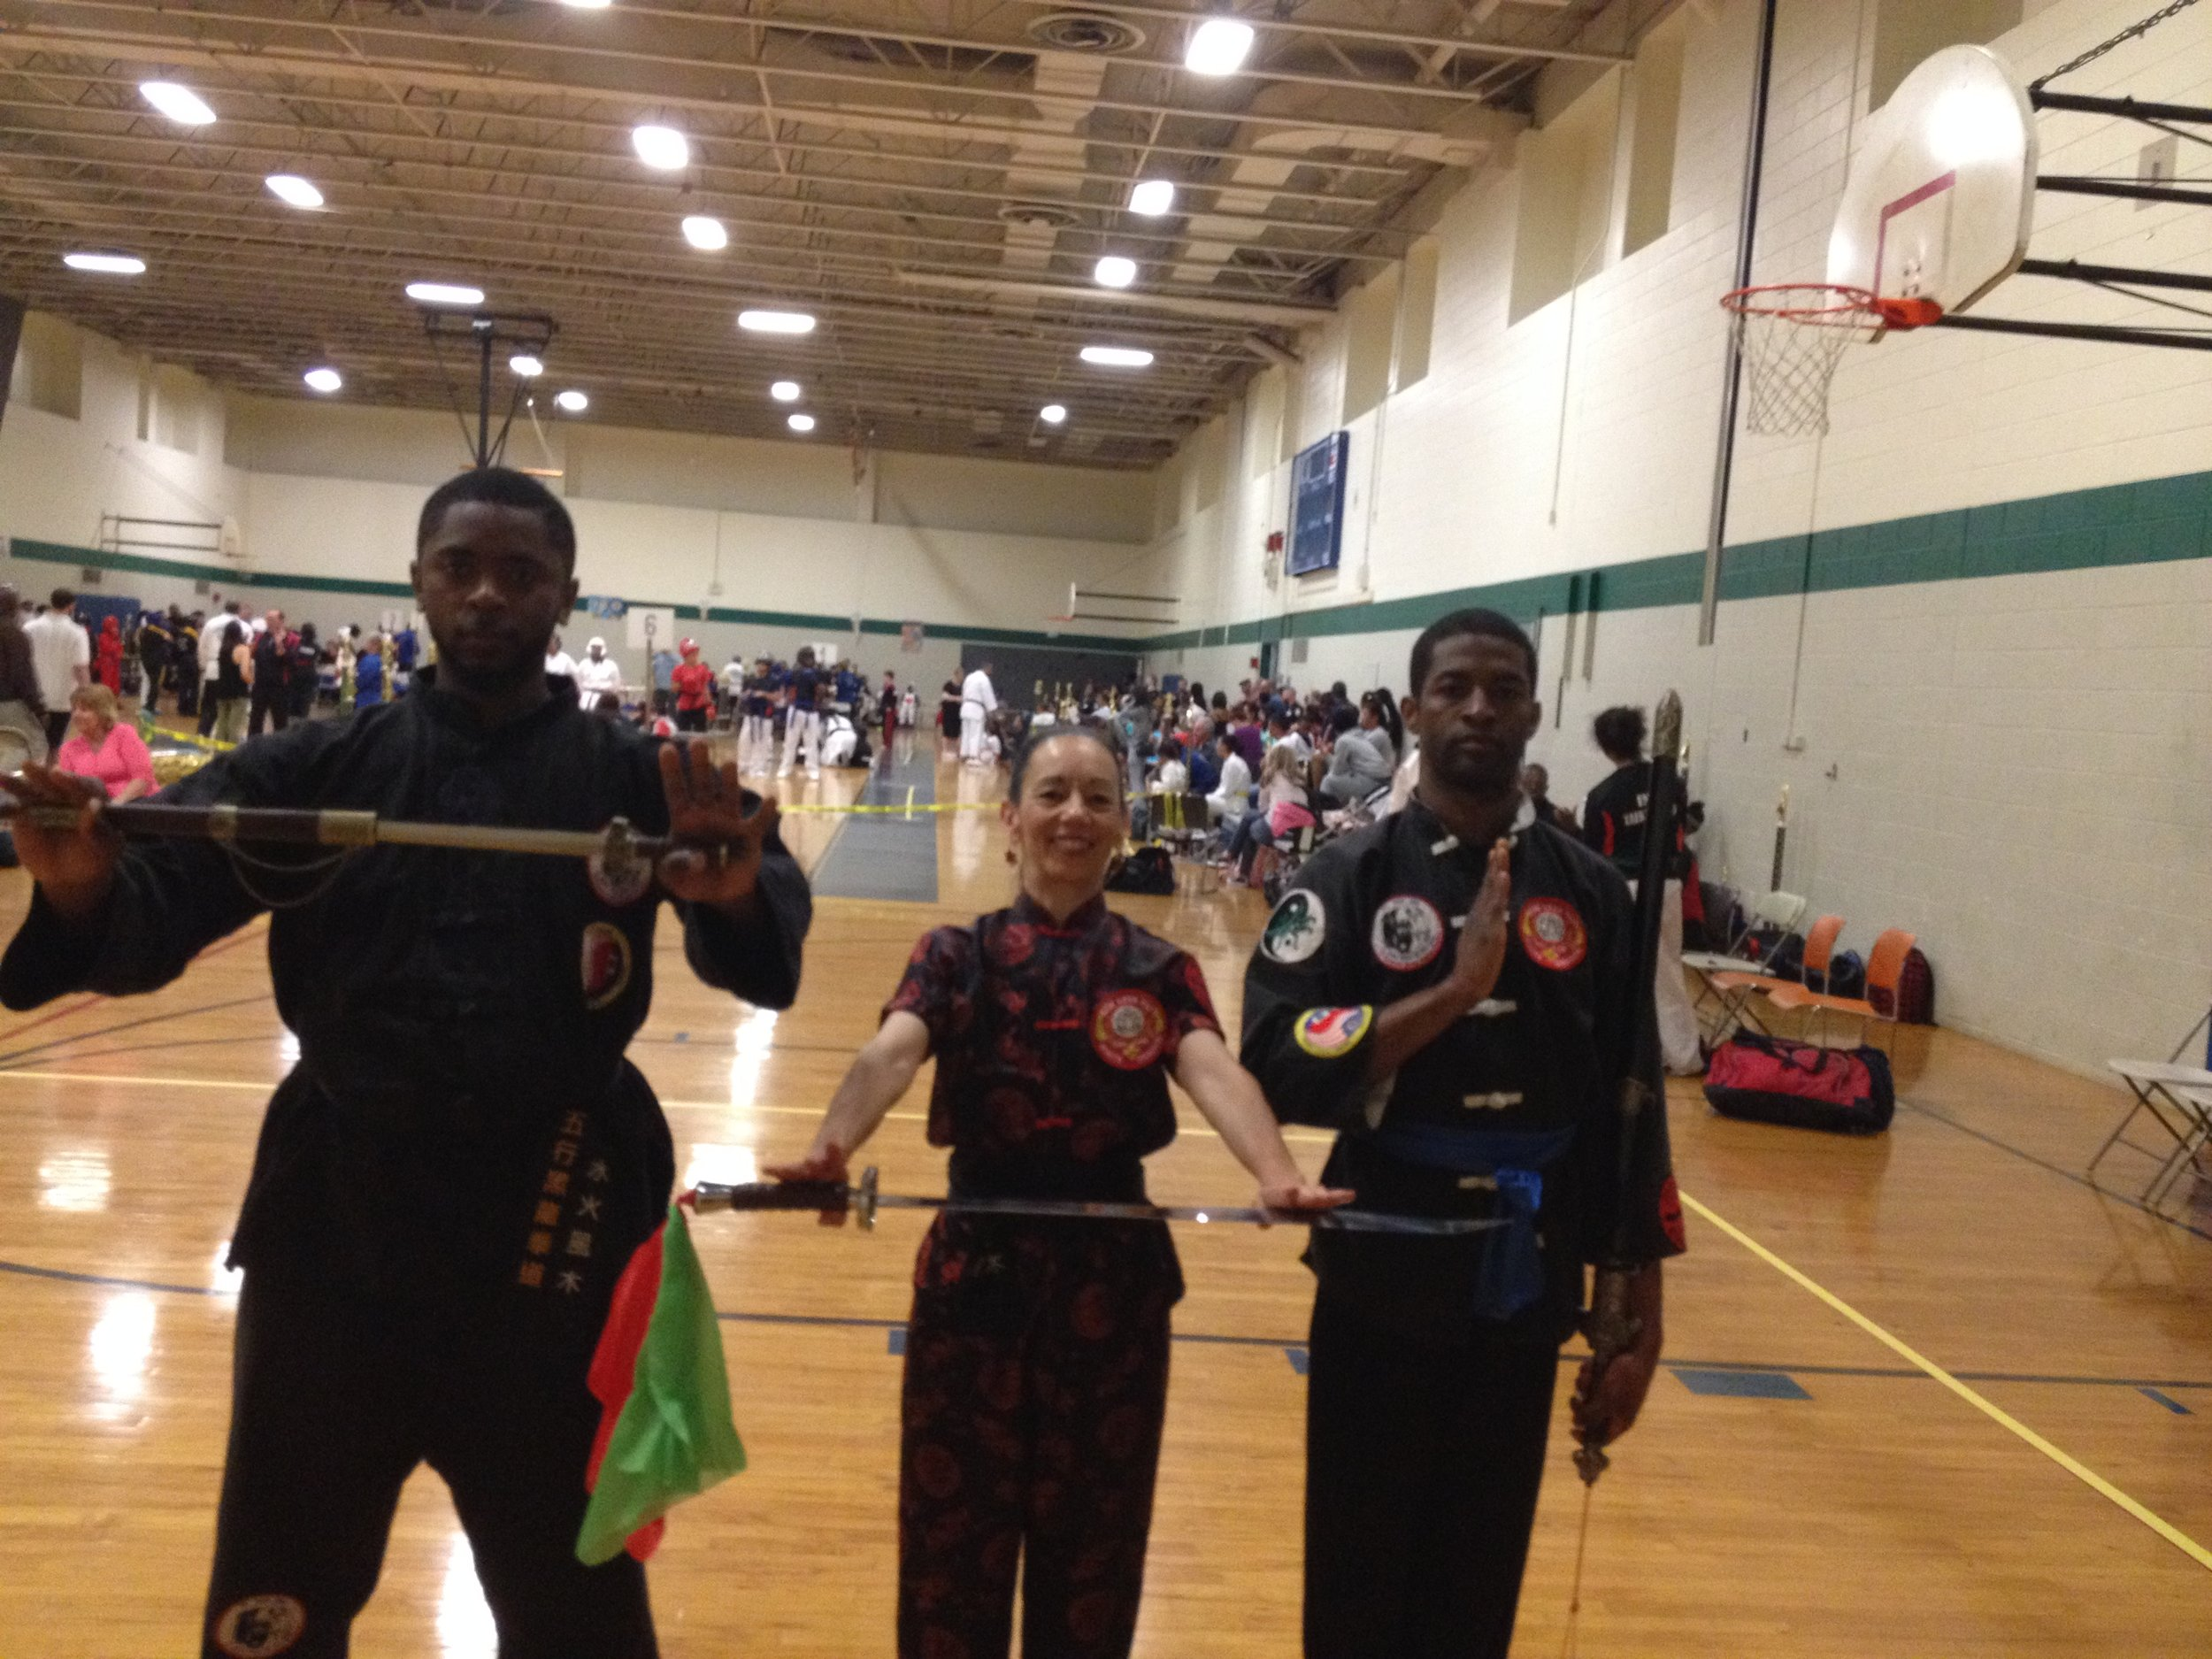 Dahmeen, Sharon and Gabe after Sharon at World Martial Arts Federation Karate Kung Fu Tournament - Sharon 1st Place and Dahmeen 2d Place Advanced Weapons.  Gabe 1st place Intermediate Weapons.jpg